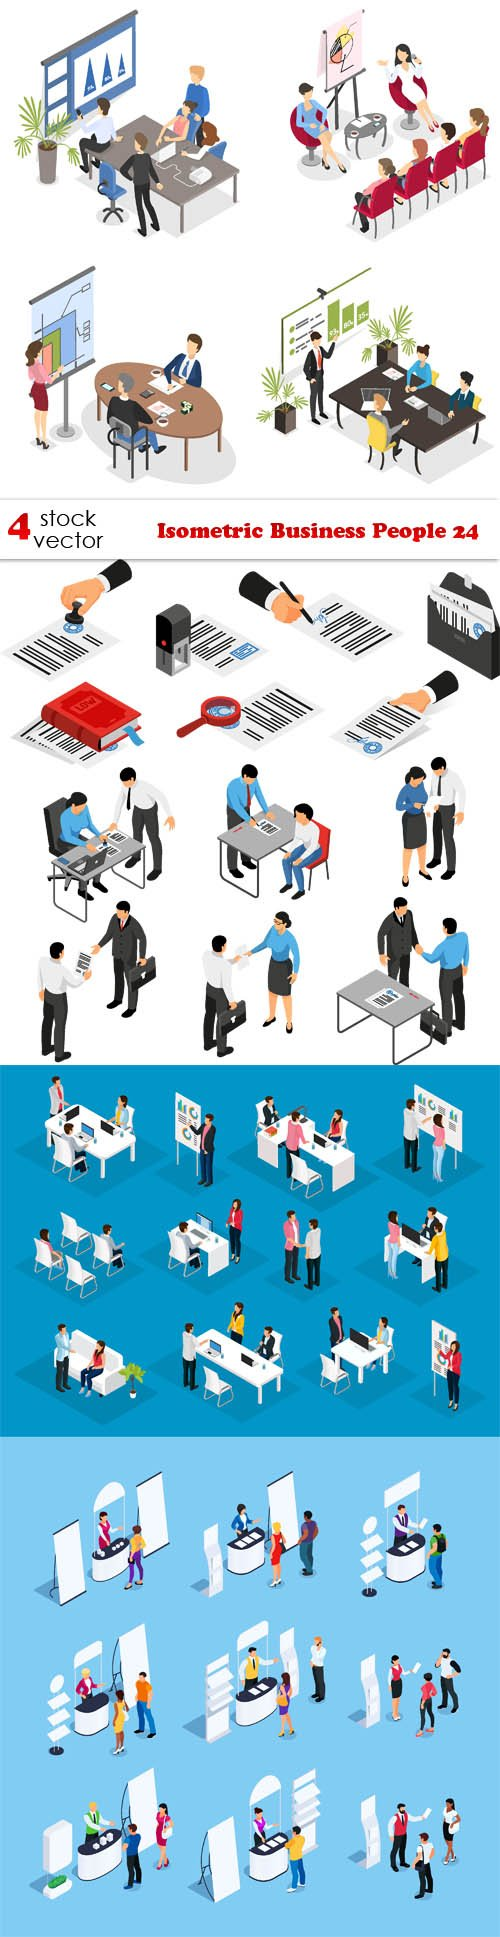 Vectors - Isometric Business People 24